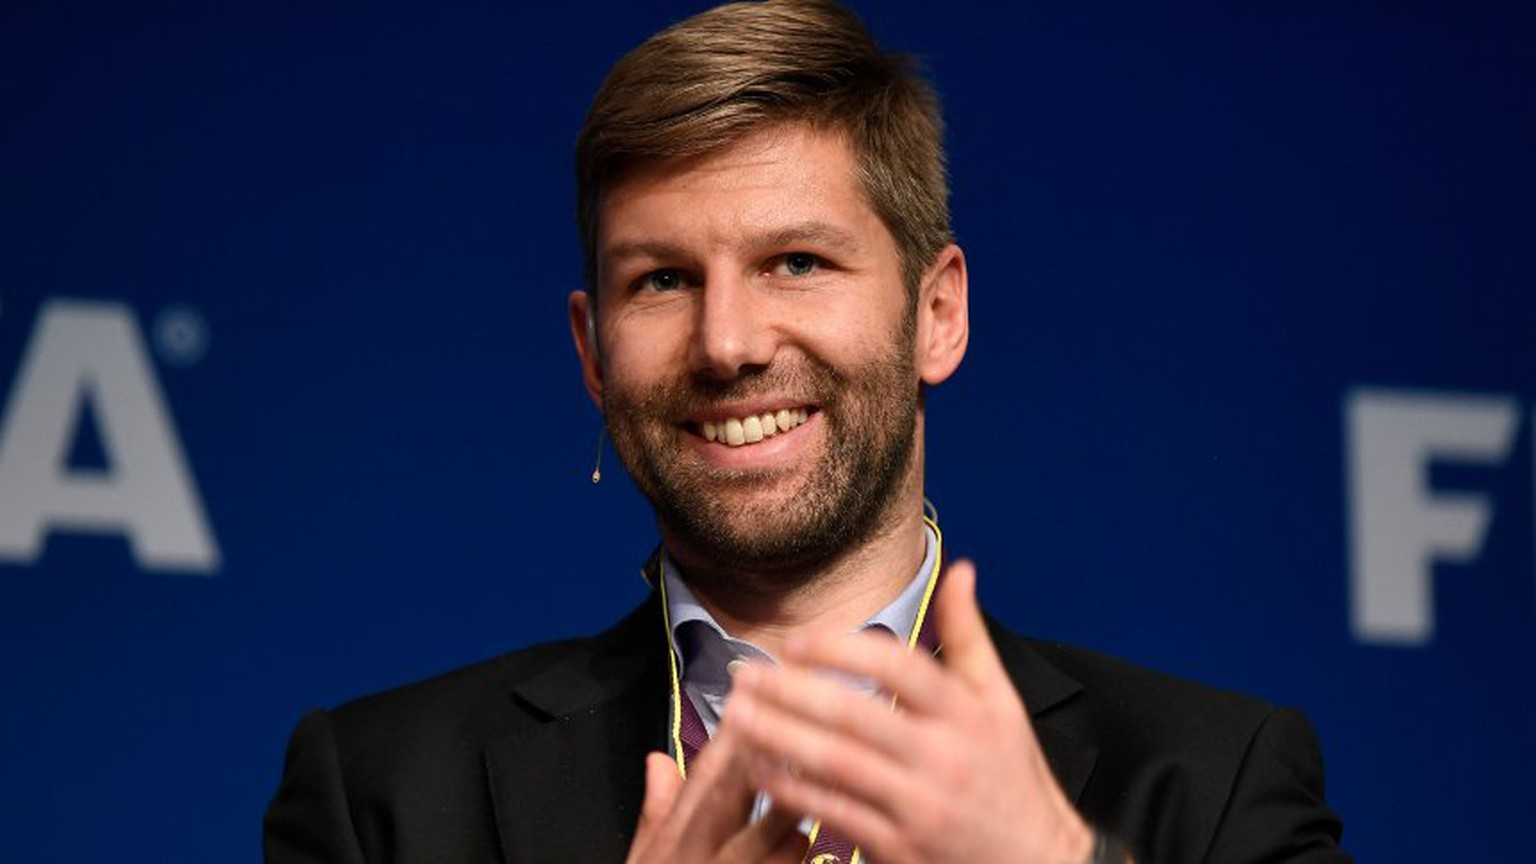 ZURICH, SWITZERLAND - MARCH 06: Thomas Hitzlsperger,former captain of the German men's national team, during the FIFA Annual Conference for Equality & Inclusion at the Home of FIFA on March 6, 2017 in Zurich, Switzerland. (Photo by Valeriano Di Domenico - FIFA/FIFA via Getty Images)